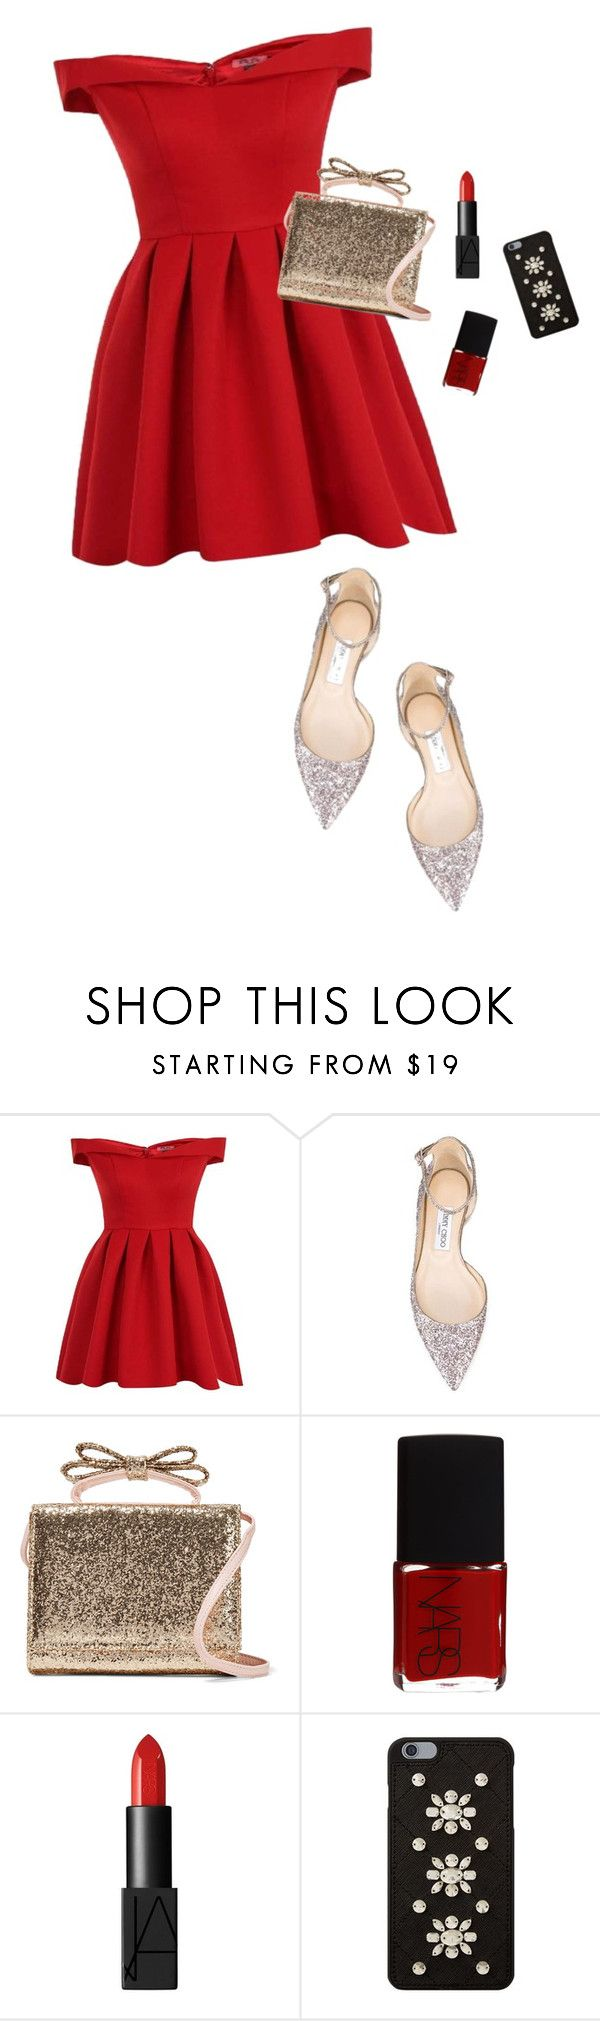 """""""Untitled #1987"""" by katerina-rampota ❤ liked on Polyvore featuring Chi Chi, Jimmy Choo, RED Valentino, NARS Cosmetics and MICHAEL Michael Kors"""